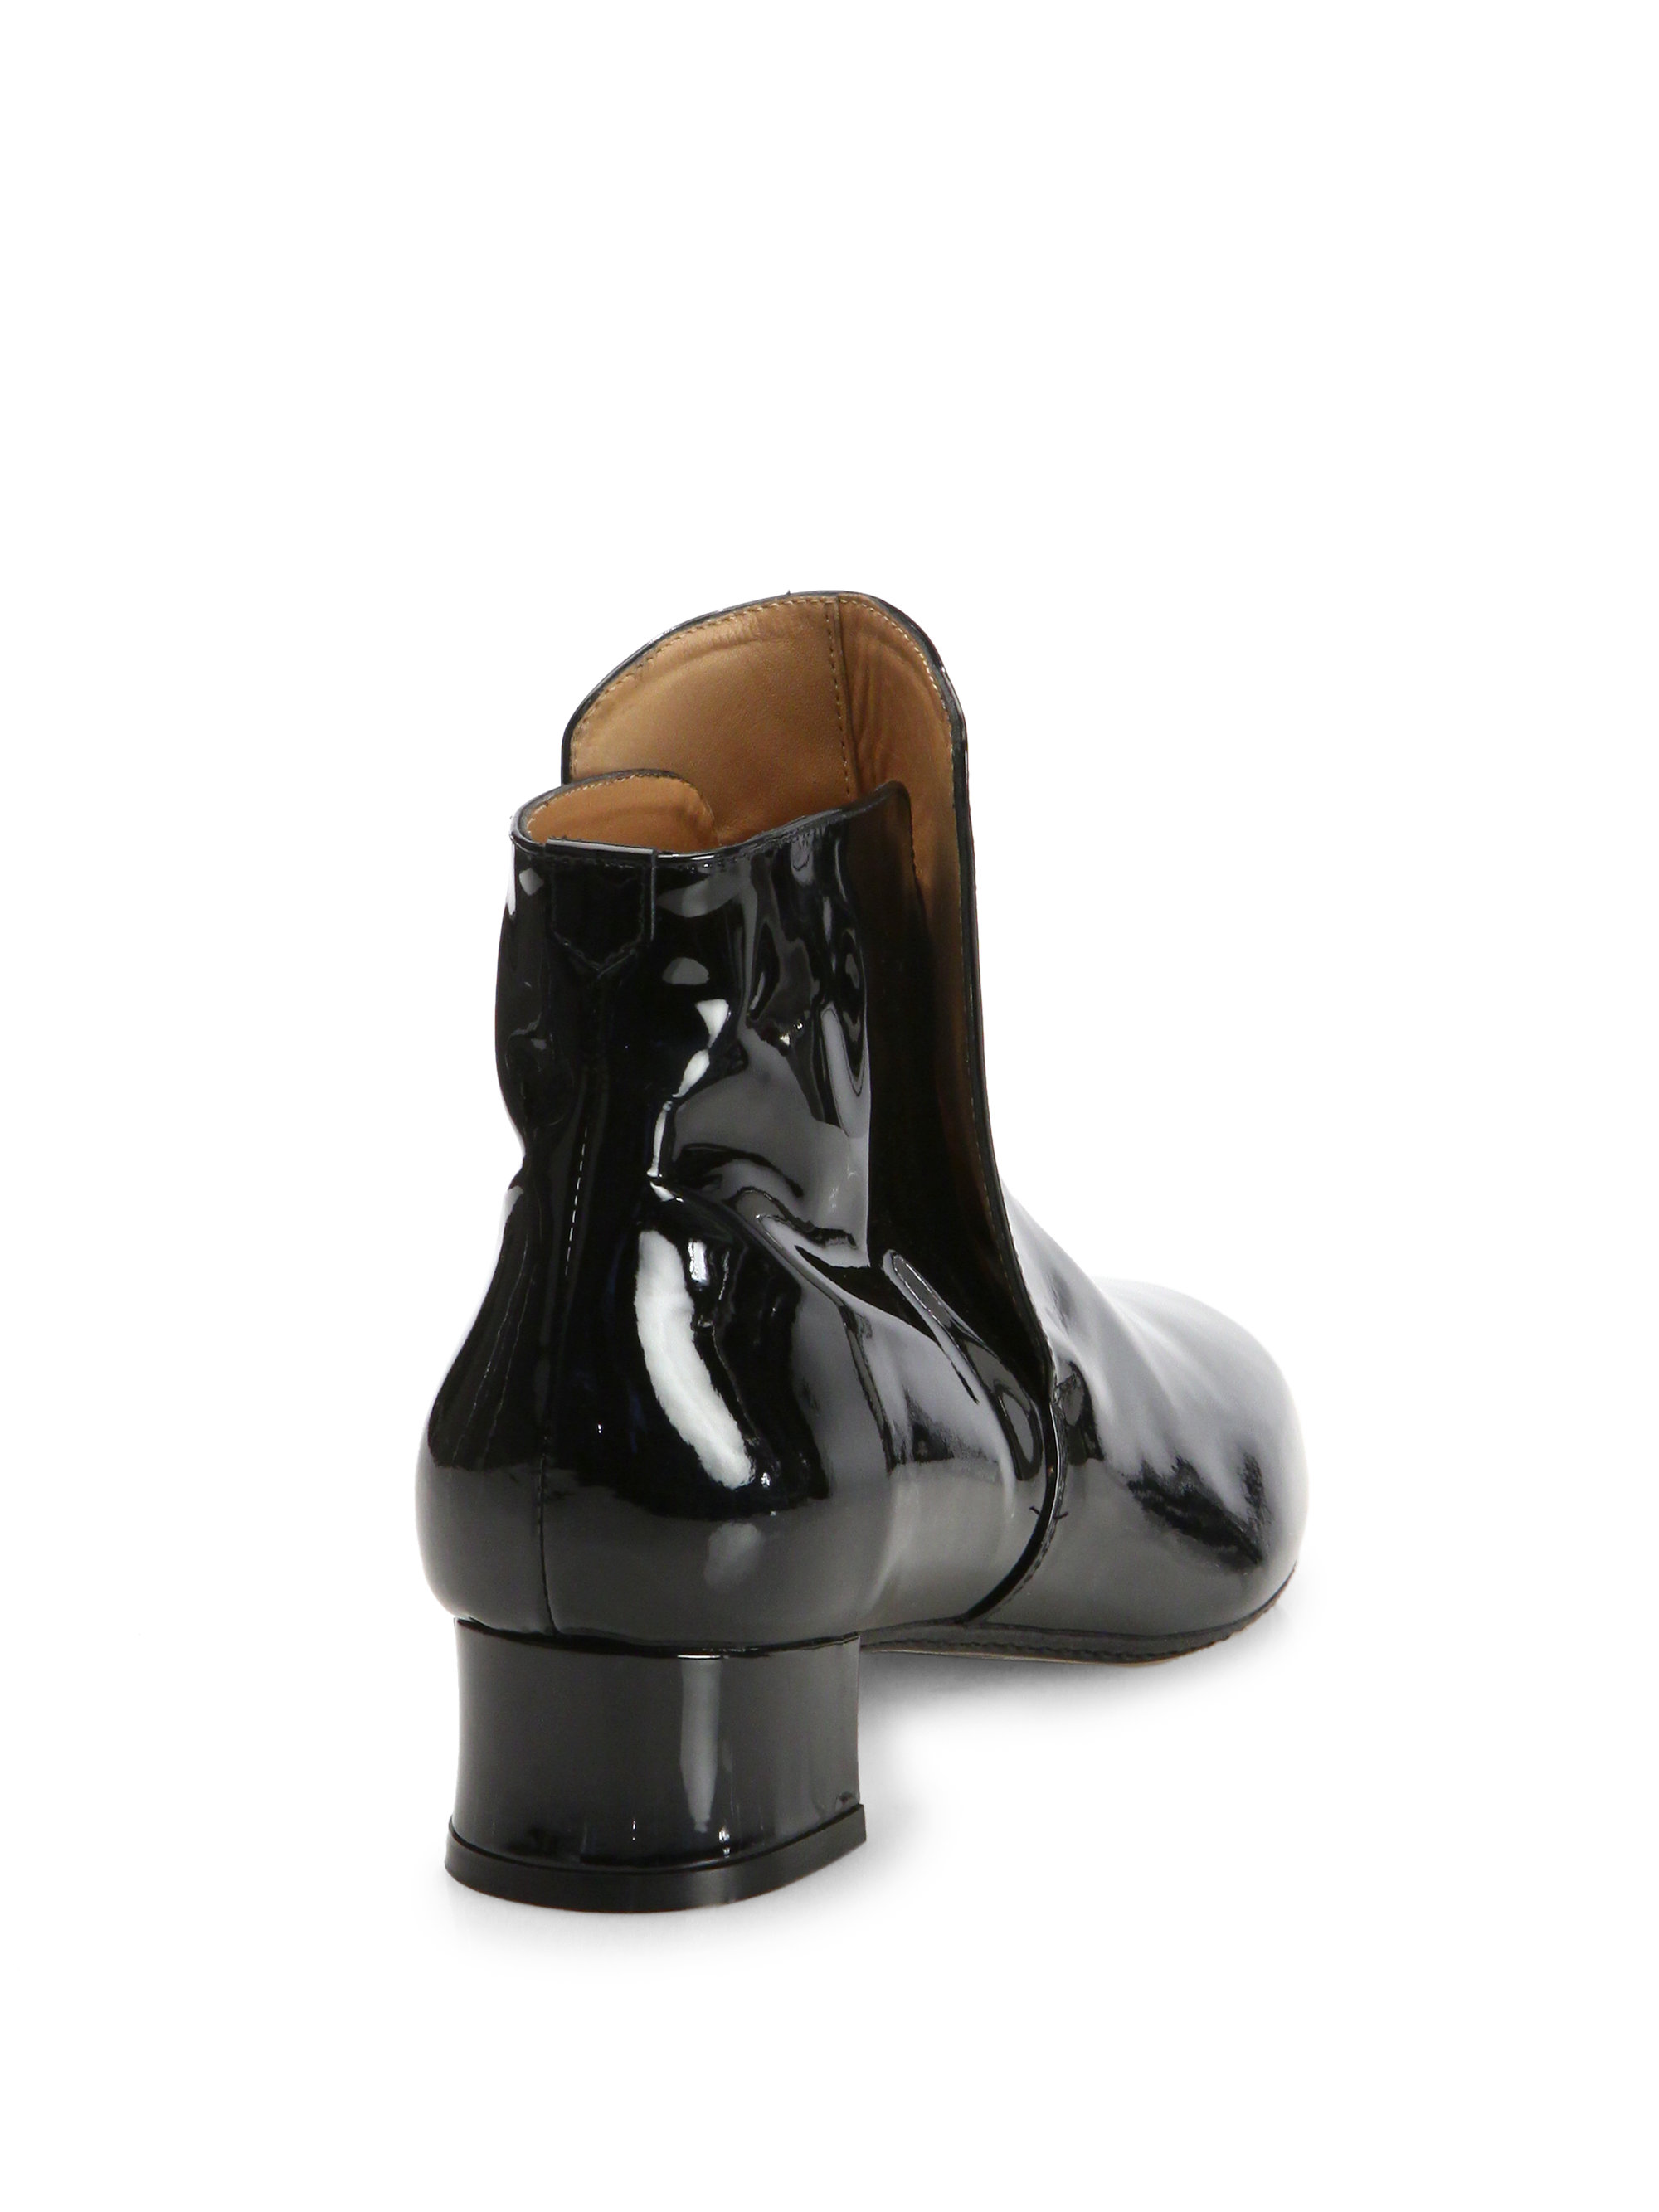 Robert Clergerie Leather Boots NSdGTIngg1